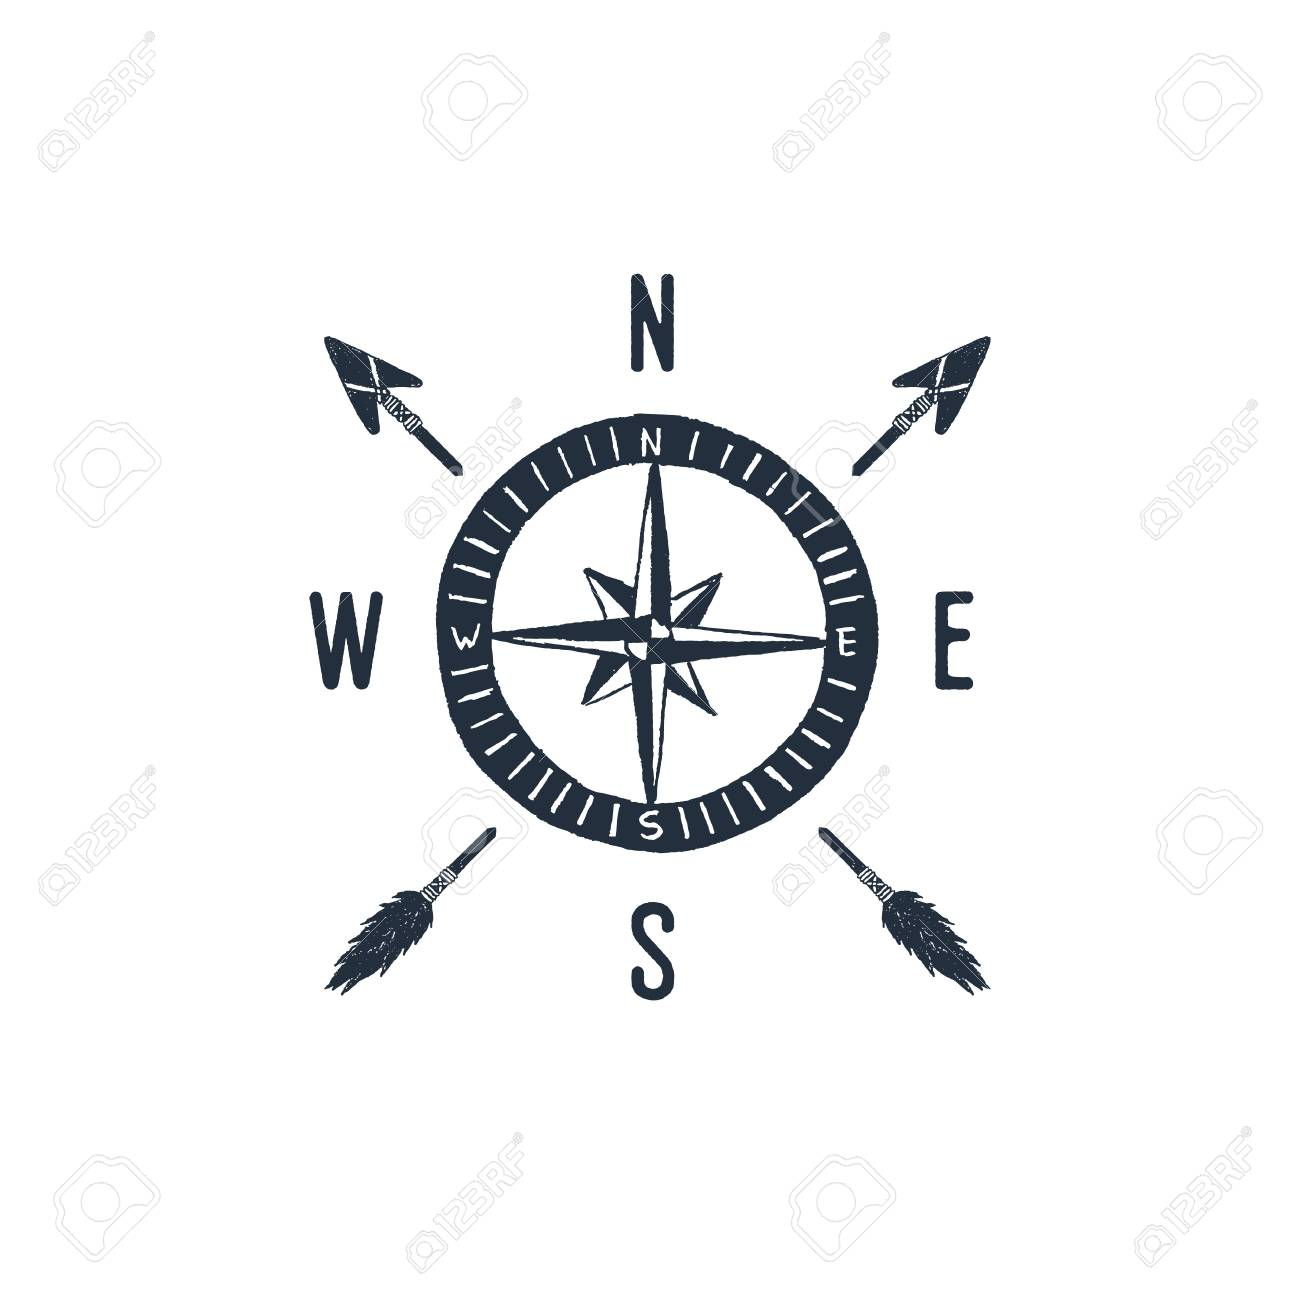 Hand drawn travel badge with compass rose textured vector illustration. - 95373614